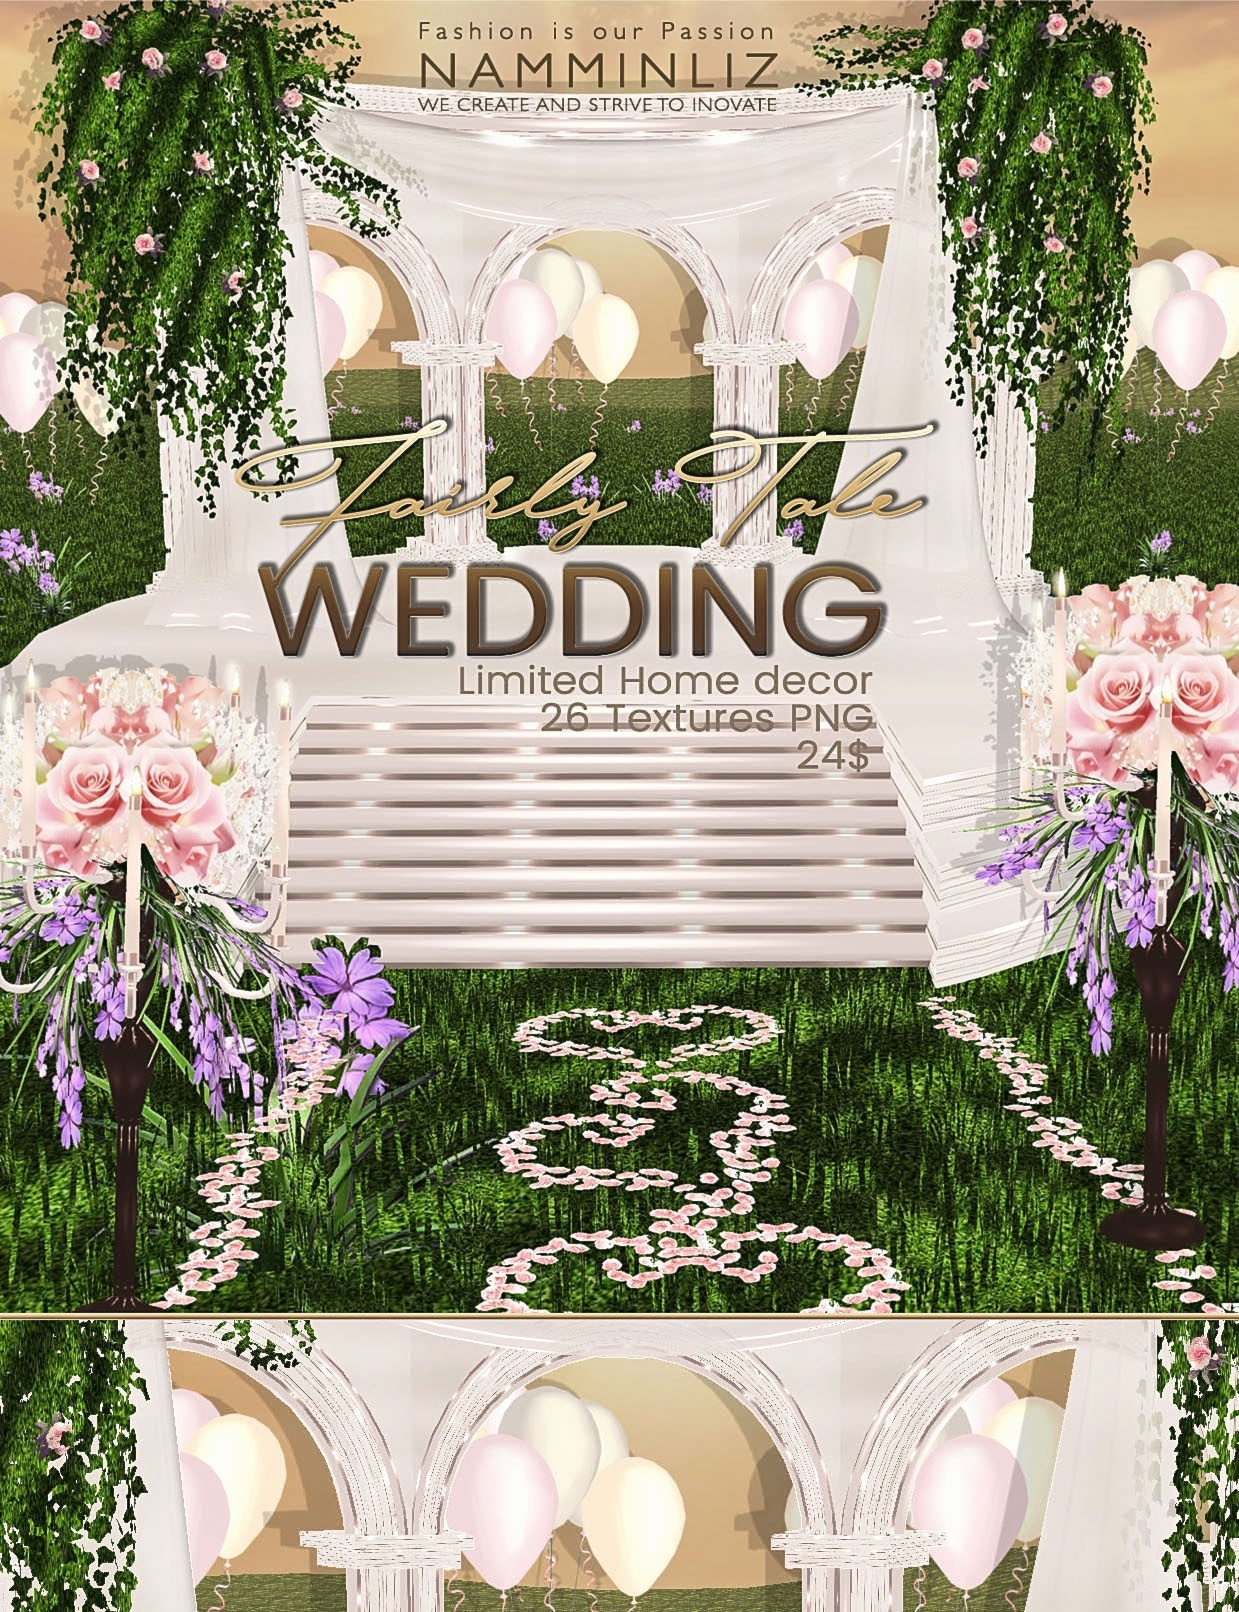 Fairy Tale Wedding home decor 26 Textures PNG imvu Limited to 5 persons